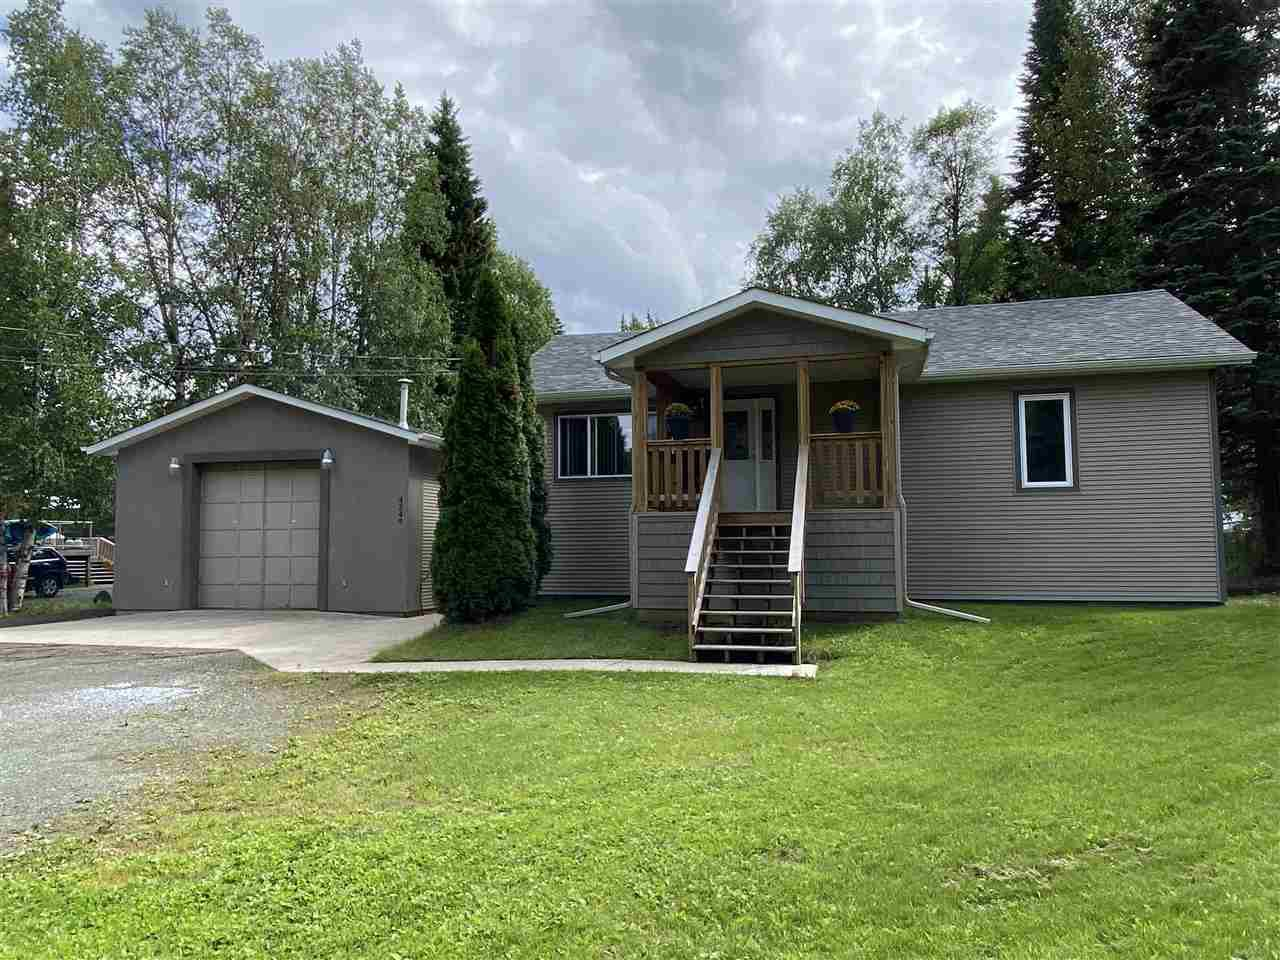 Main Photo: 4249 ARABIAN Road in Prince George: Emerald House for sale (PG City North (Zone 73))  : MLS®# R2482556